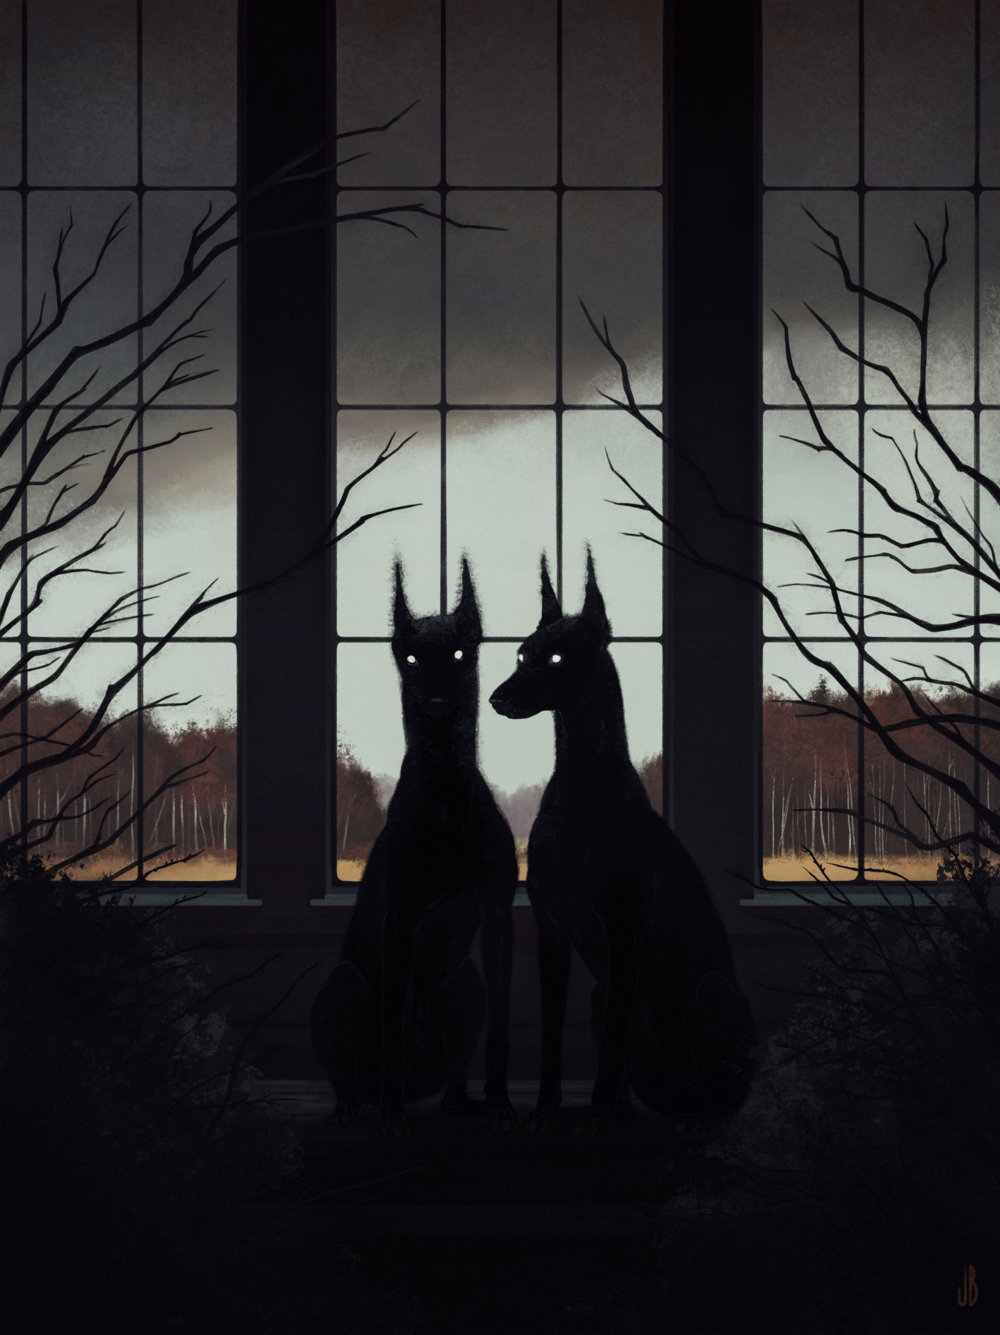 Mysterious And Shadowy Animal Illustrations By Jenna Barton 5